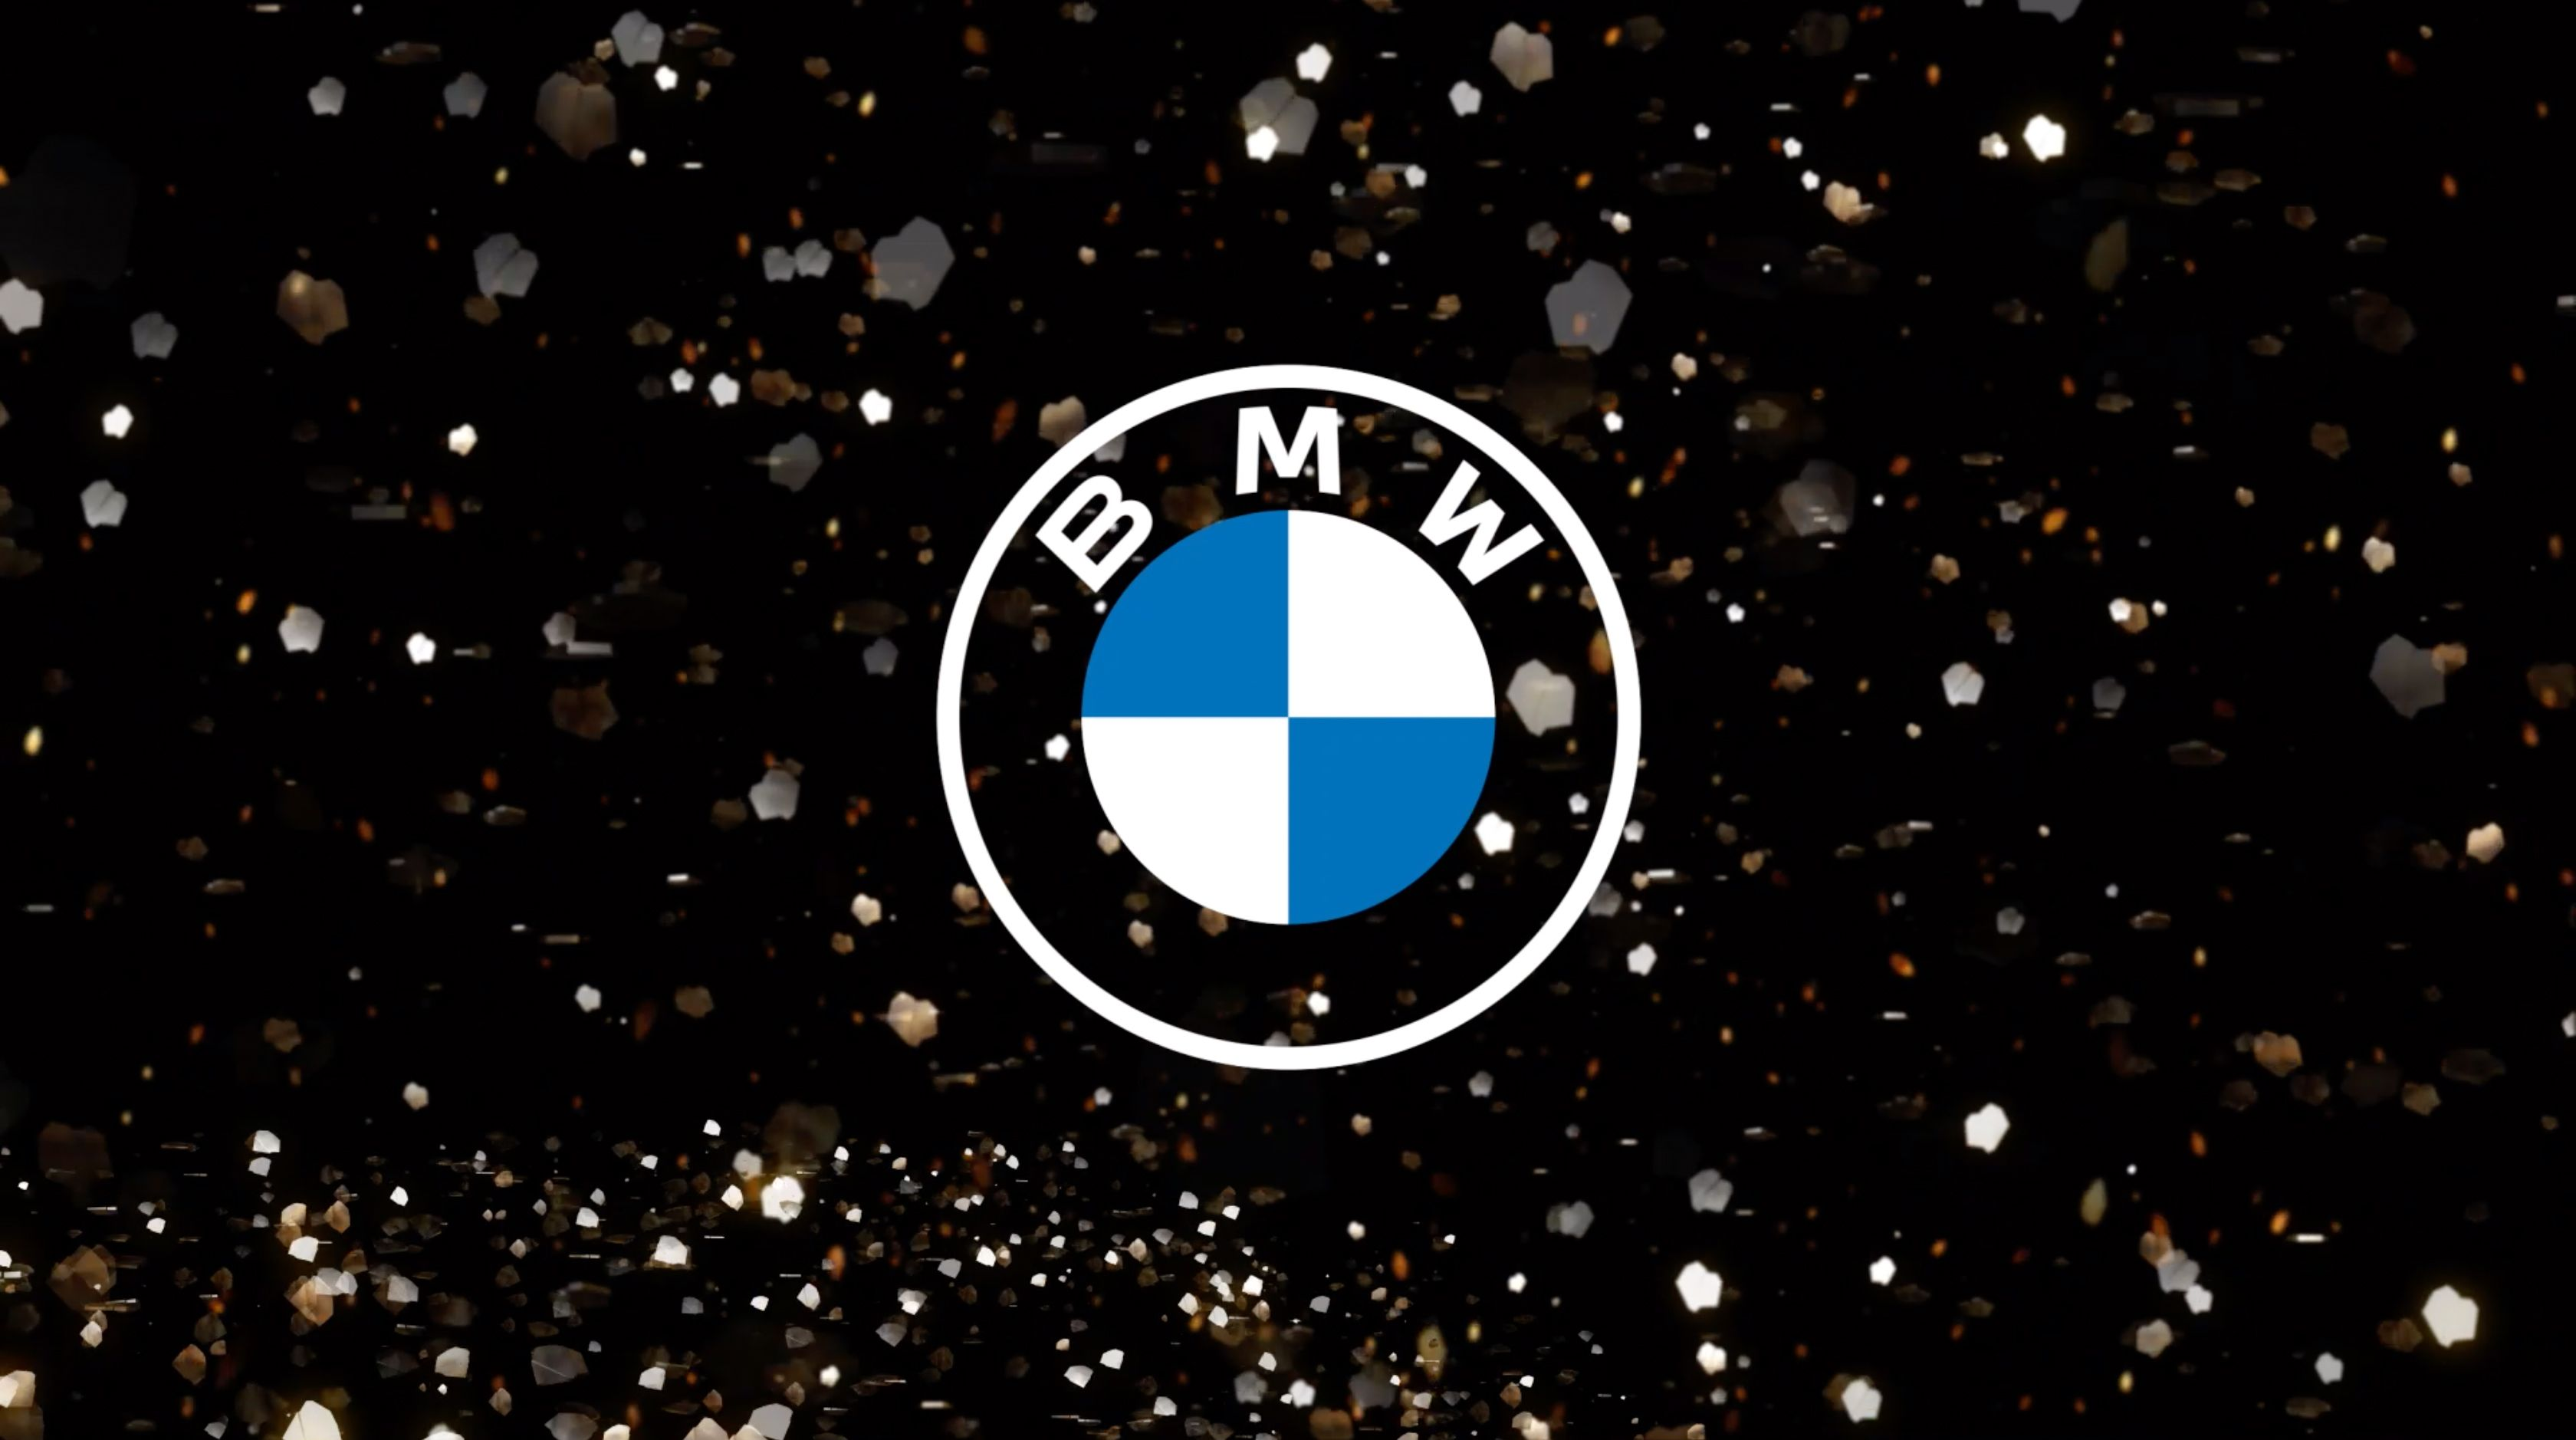 New BMW Logo Won't Be Used on Cars - New Roundel Not for Vehicles